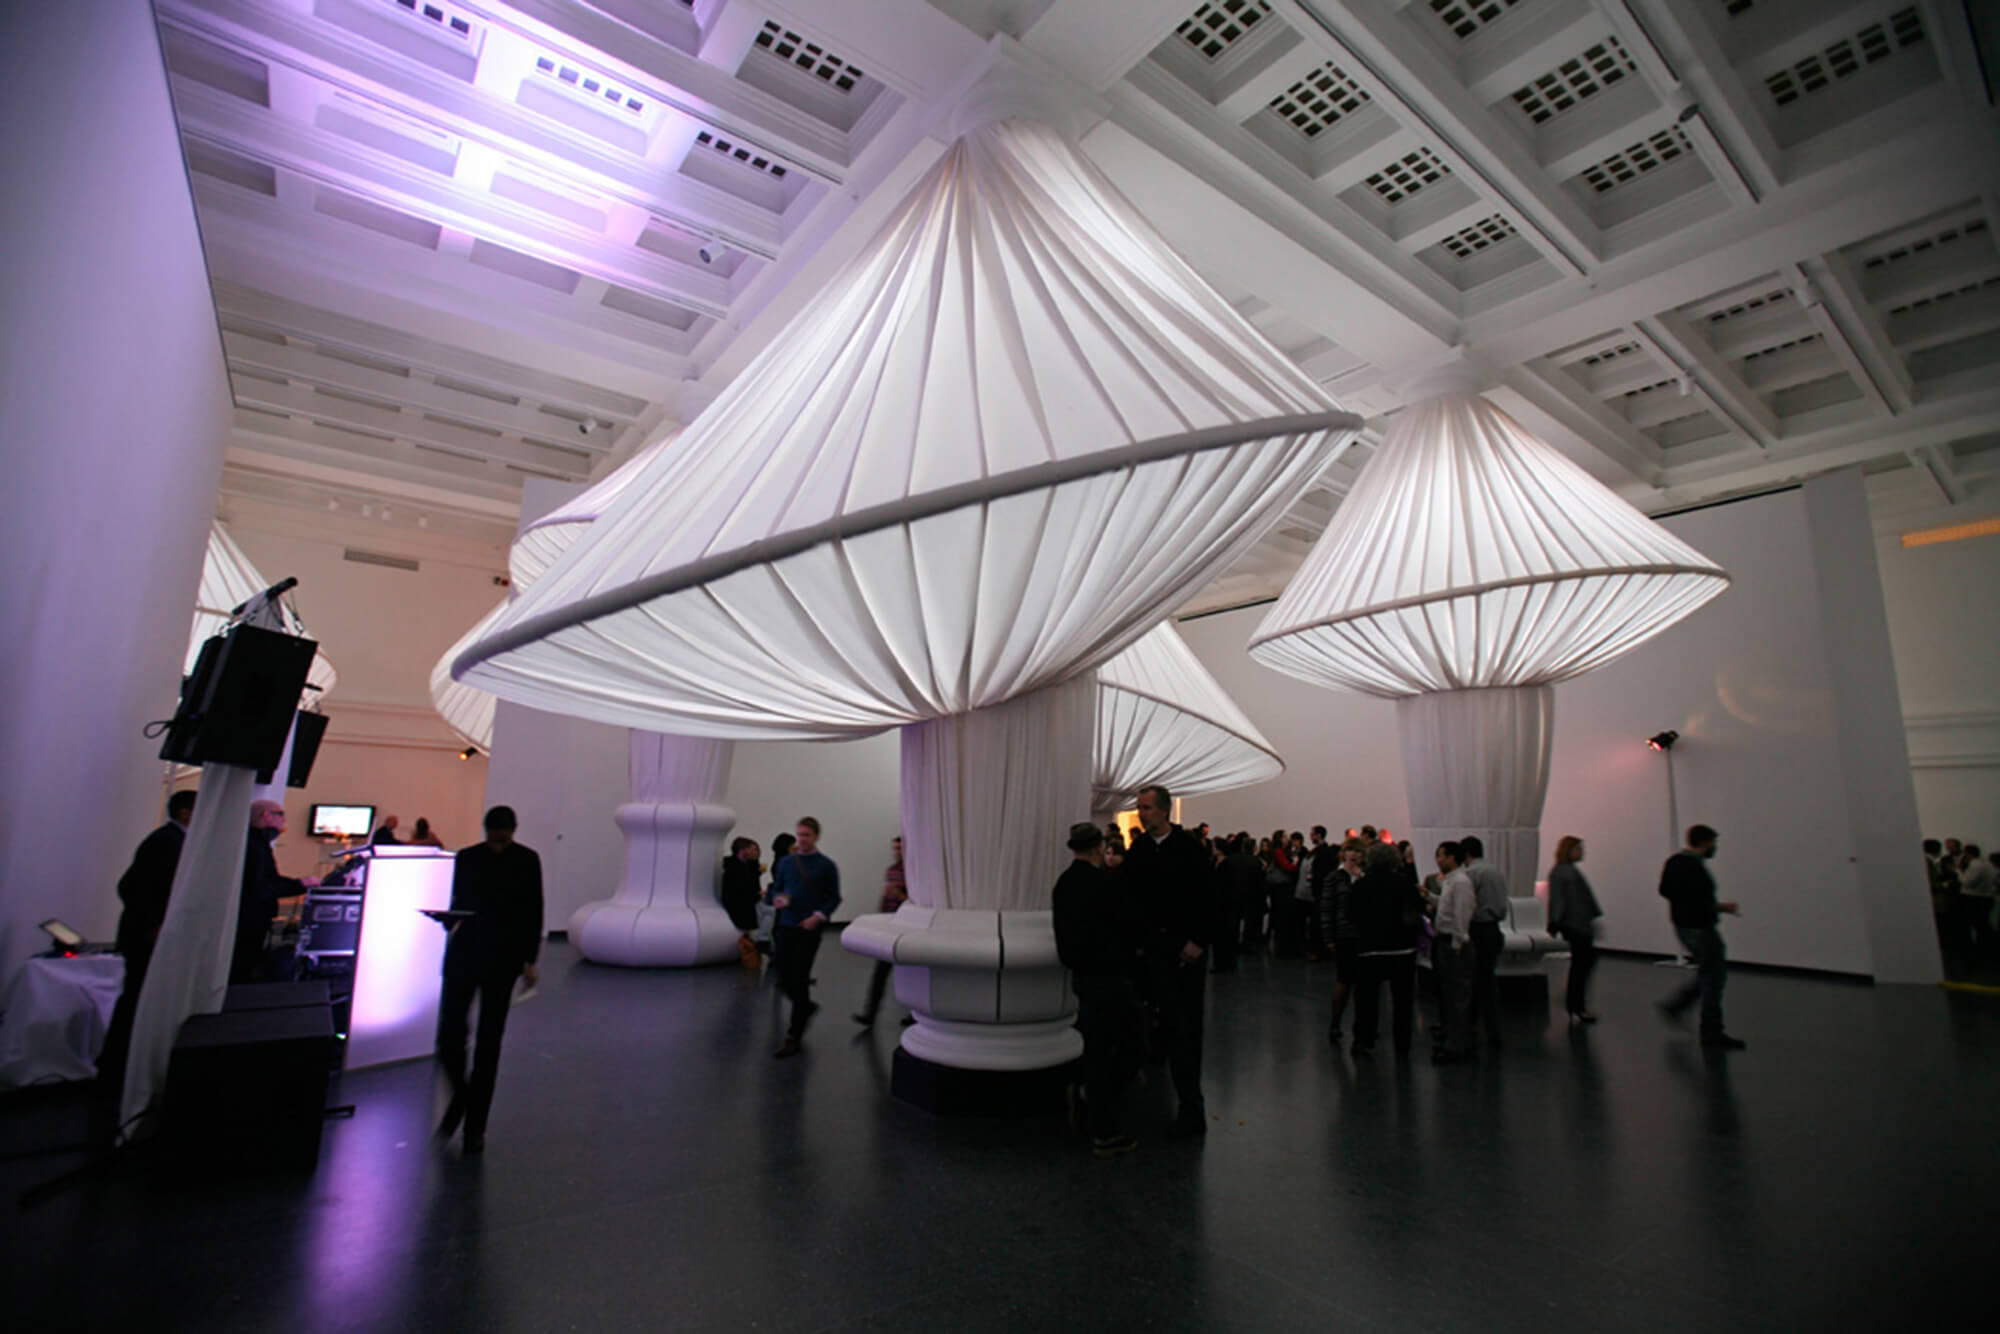 People admiring the reOrder exhibit featuring Sunbrella fabrics at the Brooklyn Museum